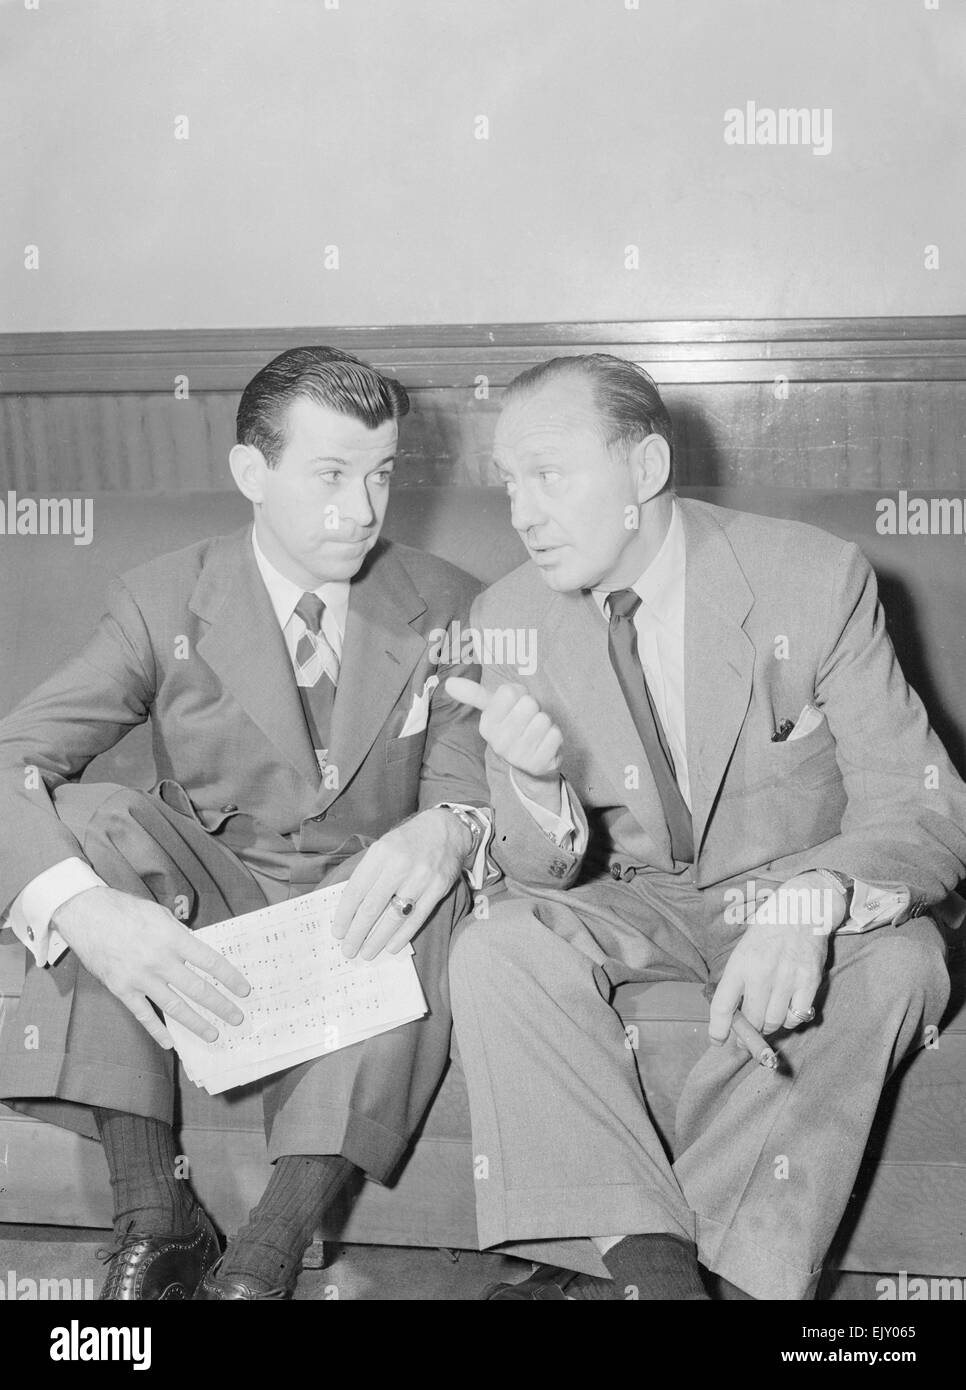 Comedian Jack Benny (right) seen here with singer Dennis Day (left). 2nd June 1952 - Stock Image